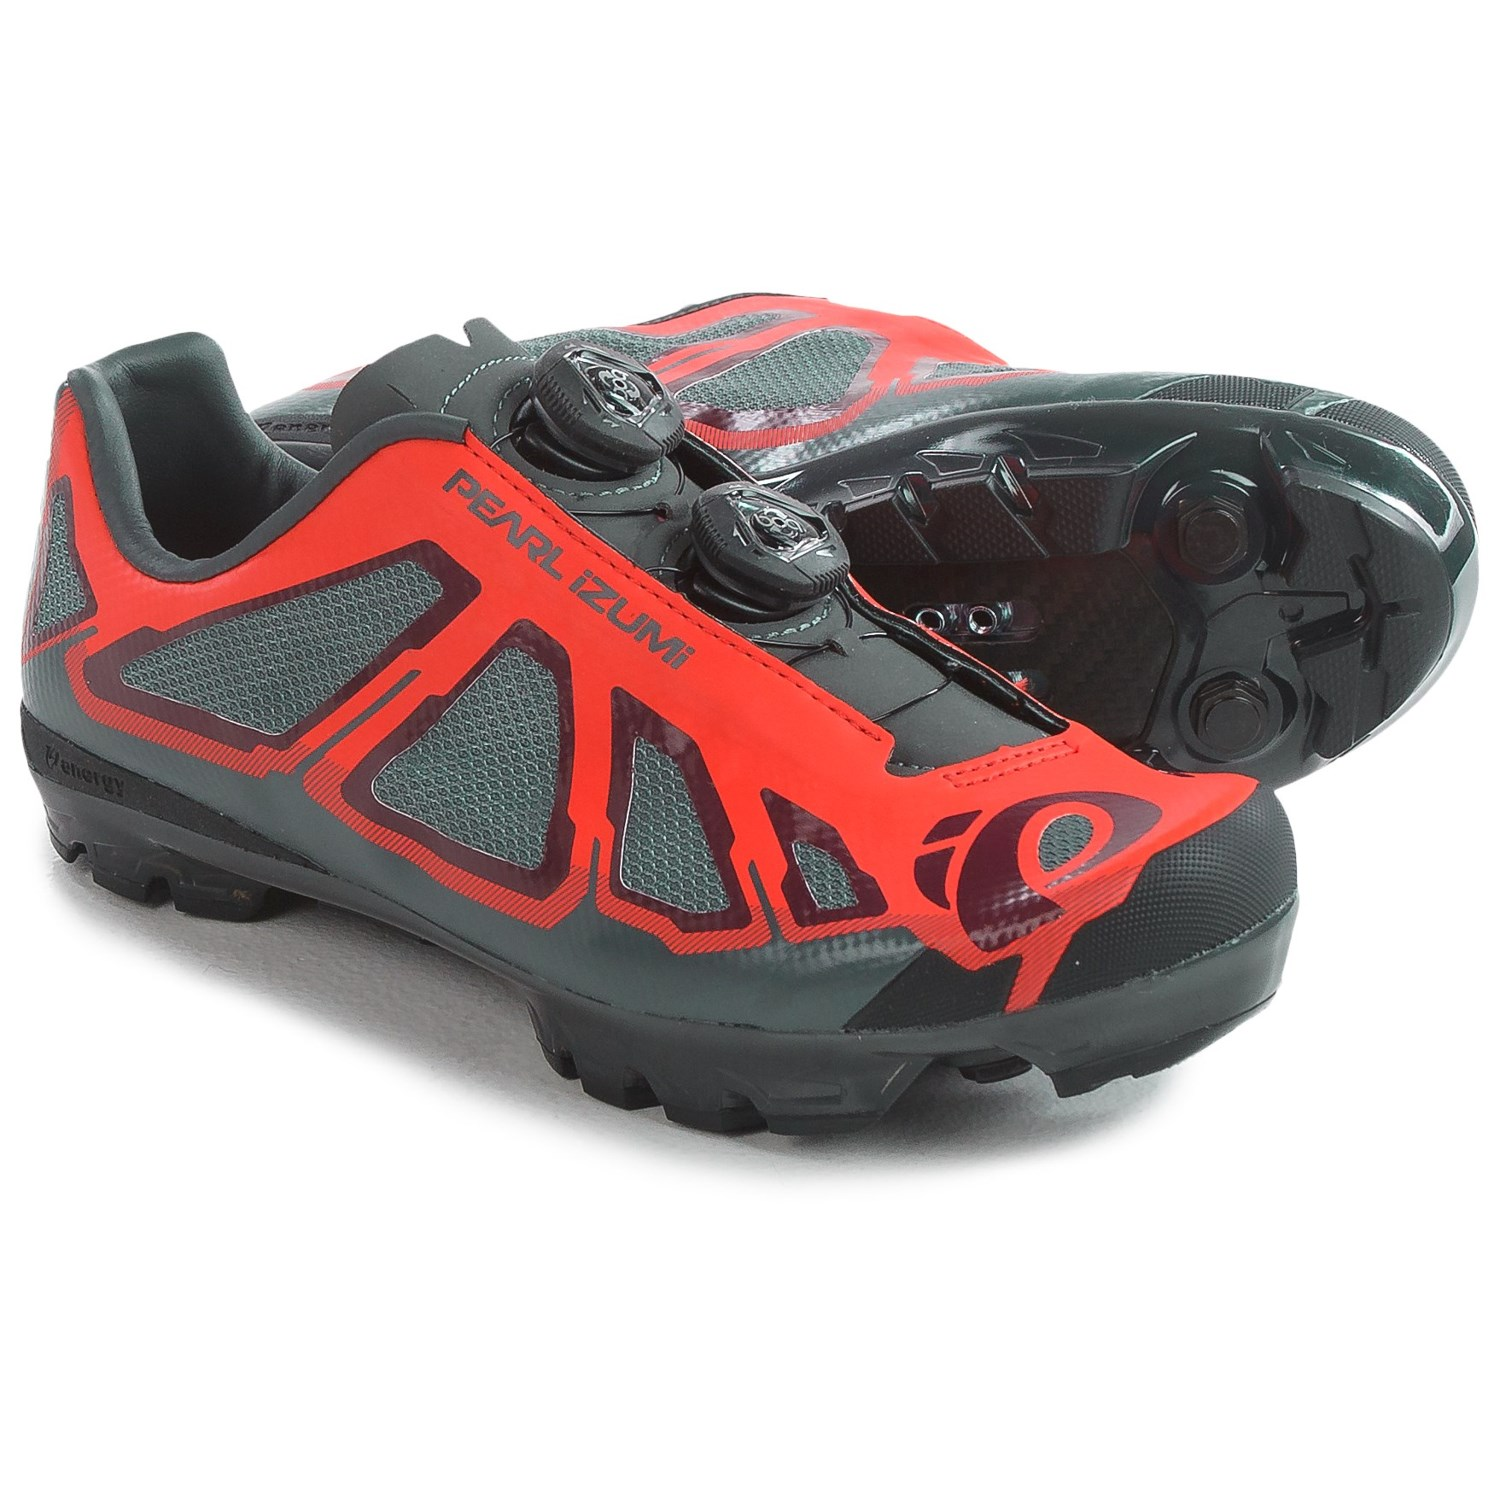 Pearl Izumi X Project 1 0 Mountain Bike Shoes For Men Save 81